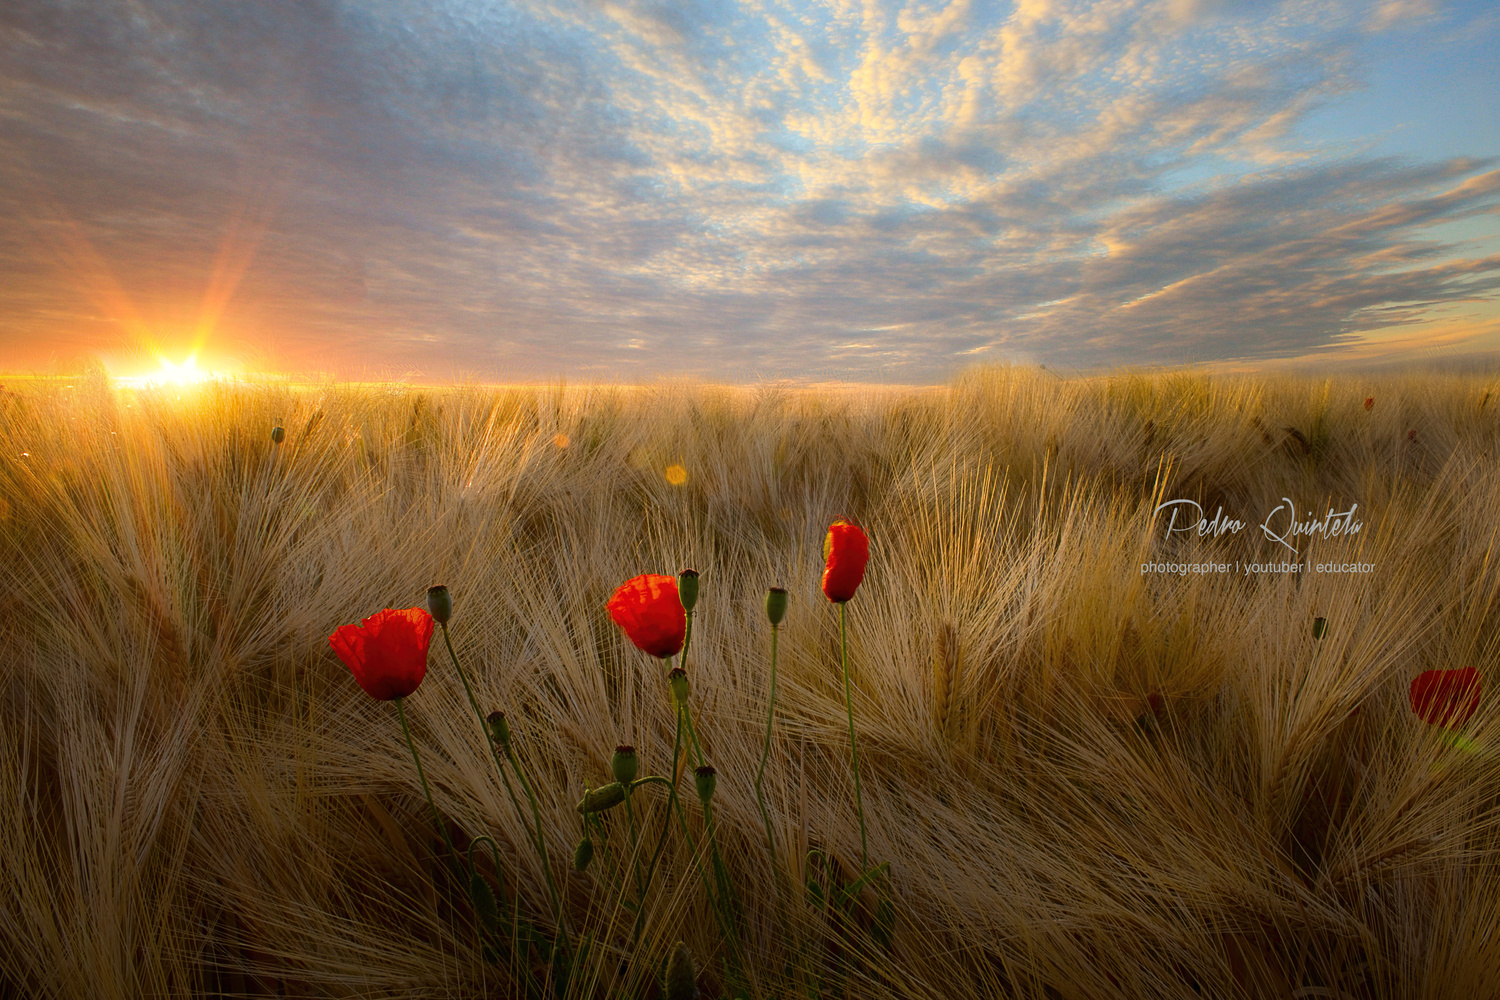 Talking with God by Pedro Quintela